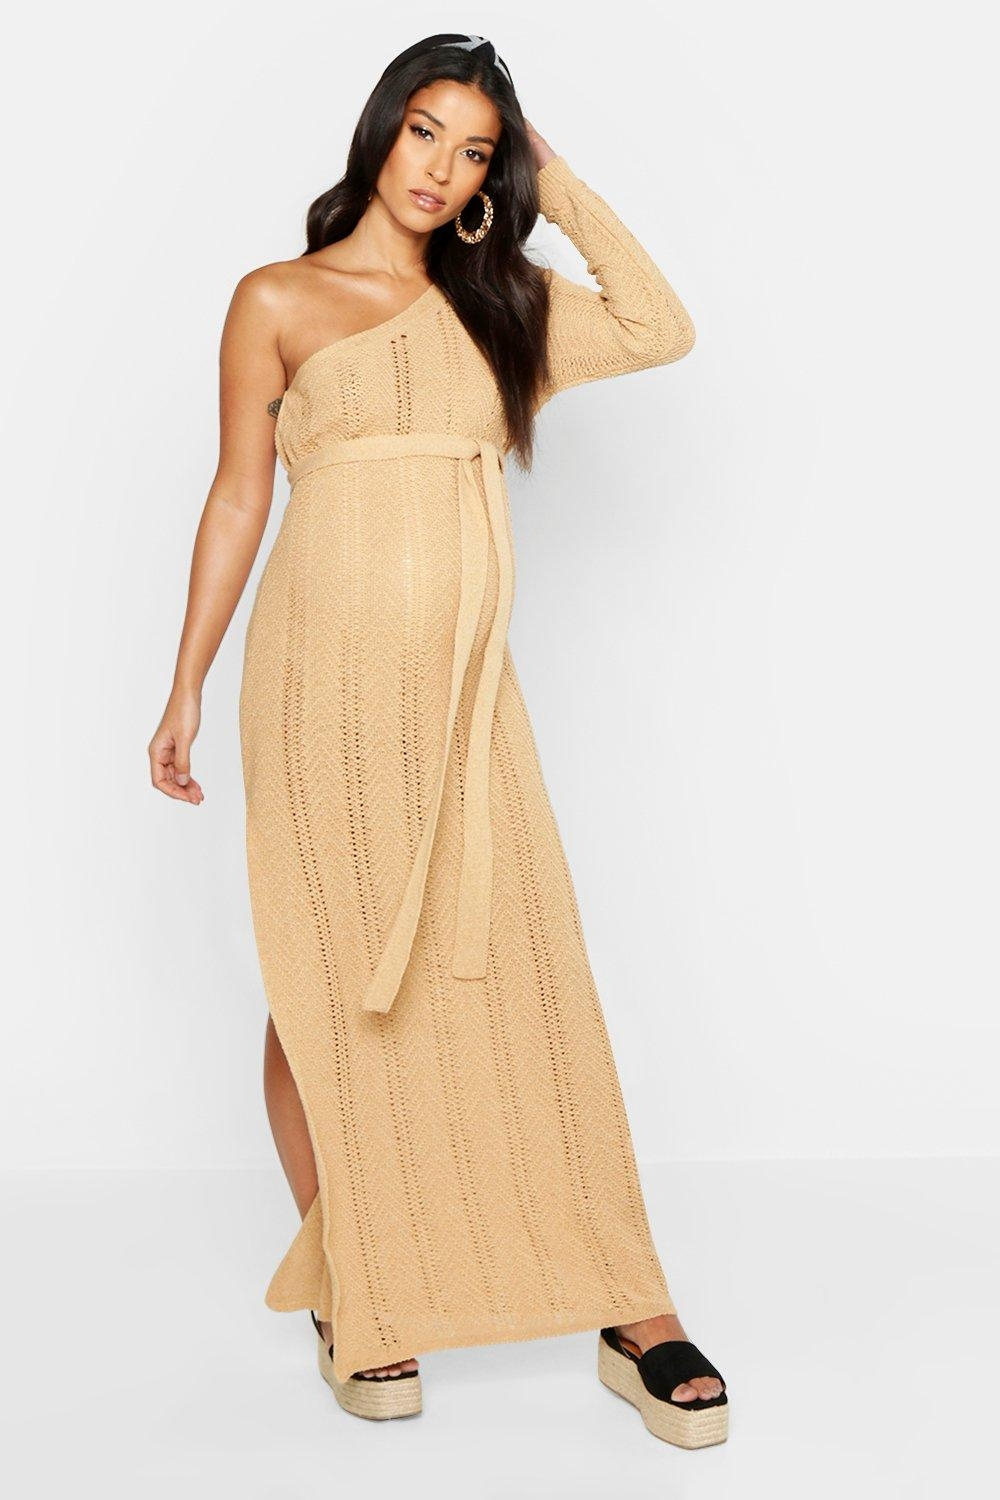 Maternity One Shoulder Knitted Beach Dress, Beige